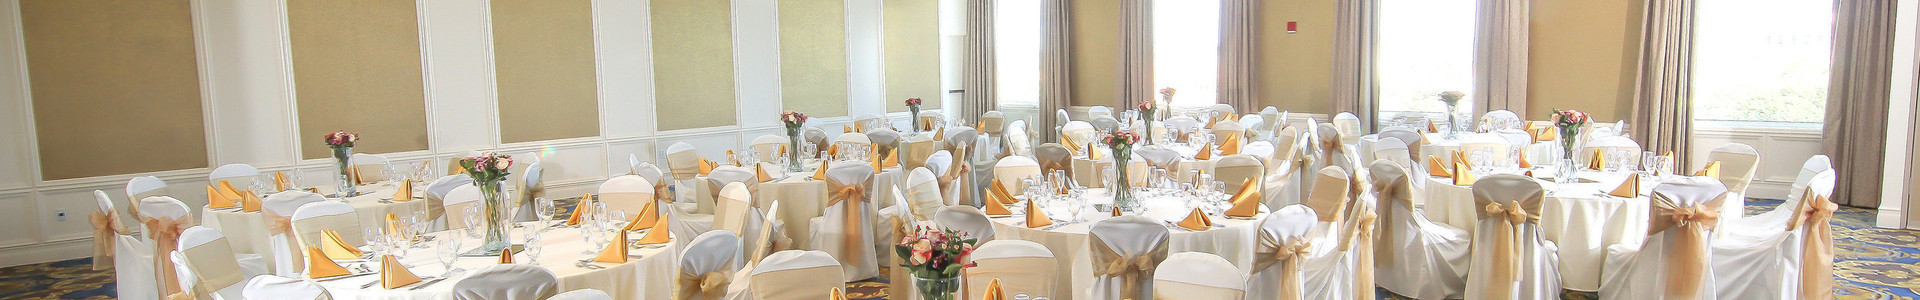 Our hotel meeting space rental off turkey lake road   Hotel venue rentals for Orlando meeting planners   Westgate Lakes Resort & Spa